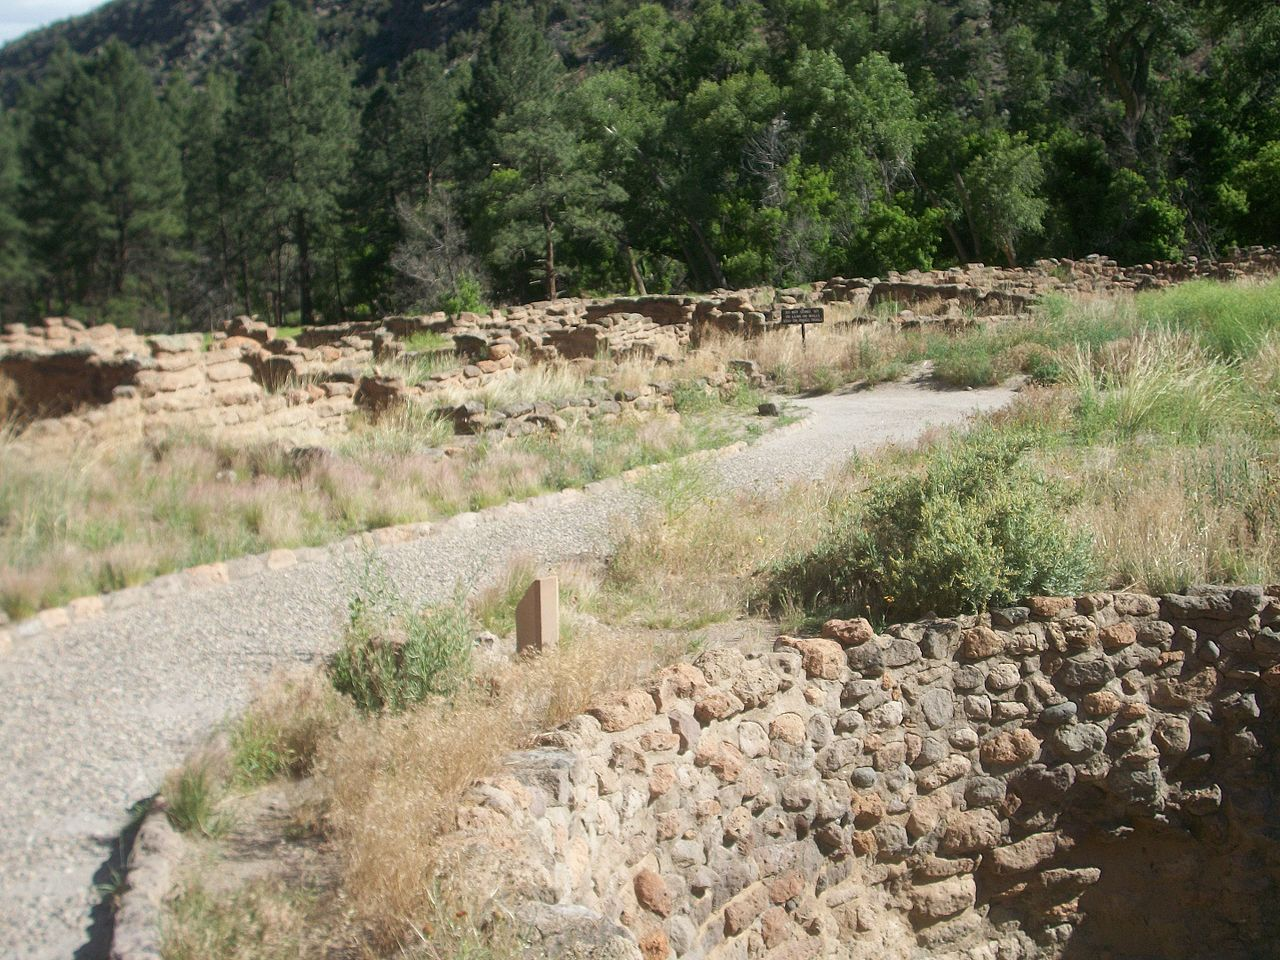 photo: Remnants of Tyuonyi Pueblo in Frijoles Canyon. Photo by By VitaleBaby.